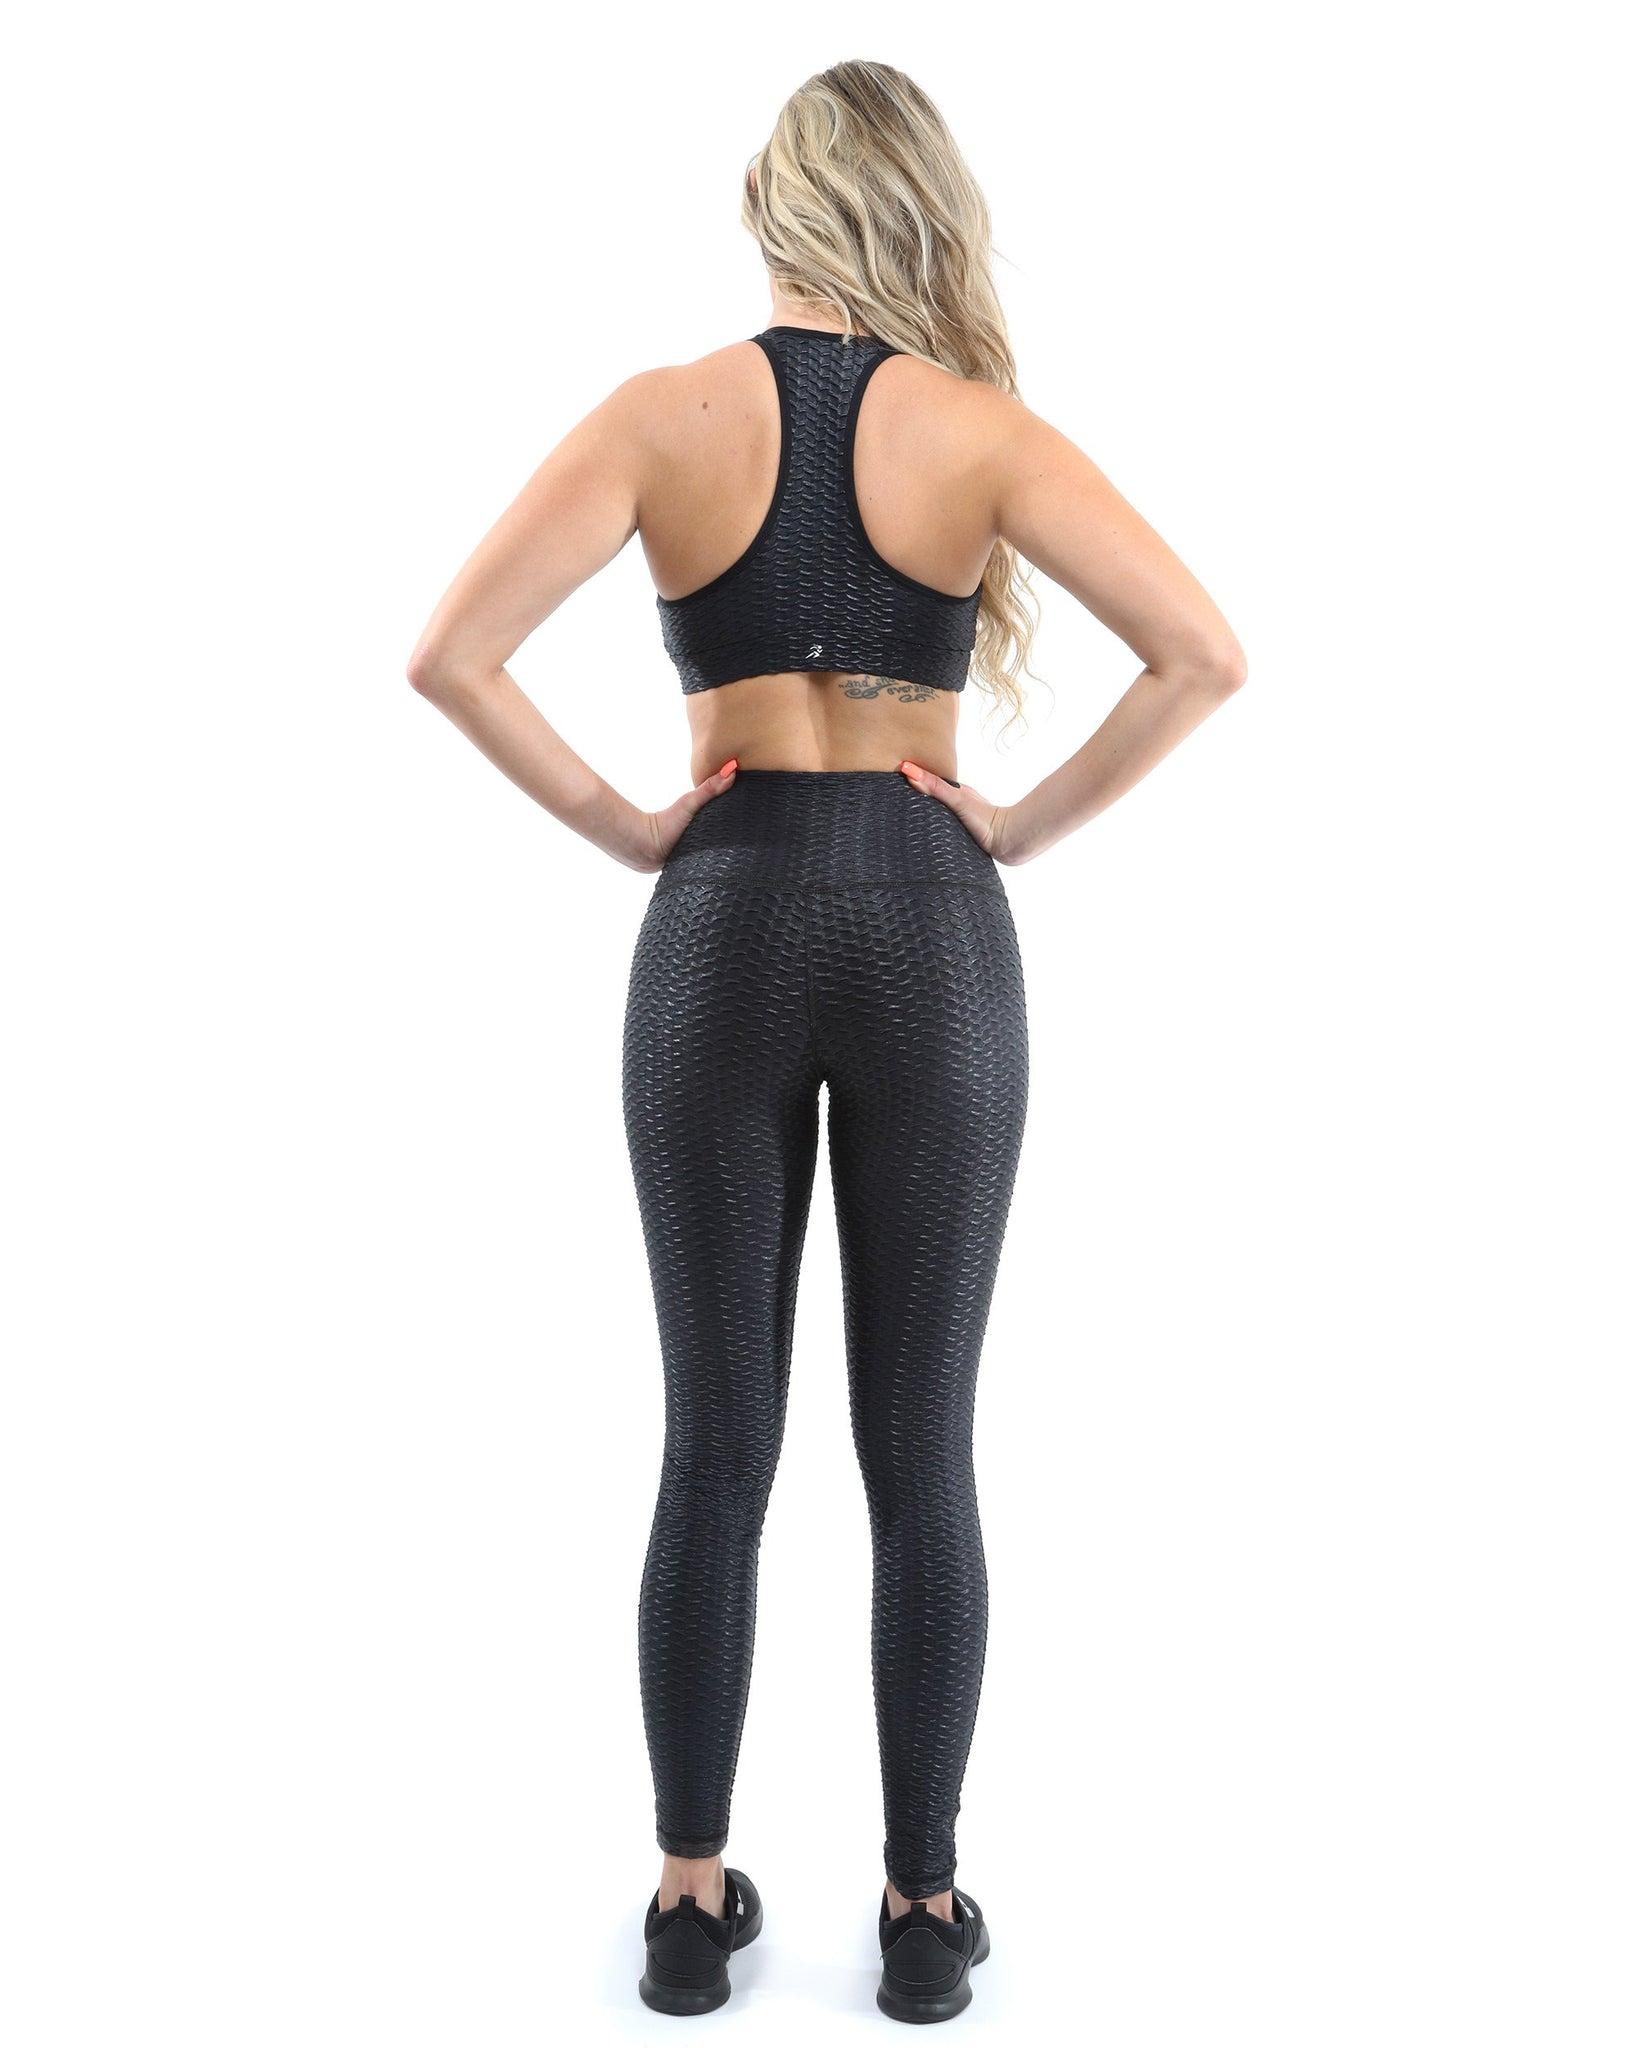 Activa Lux Activeware Set - Leggings & Sports Bra - Black [MADE IN ITALY]